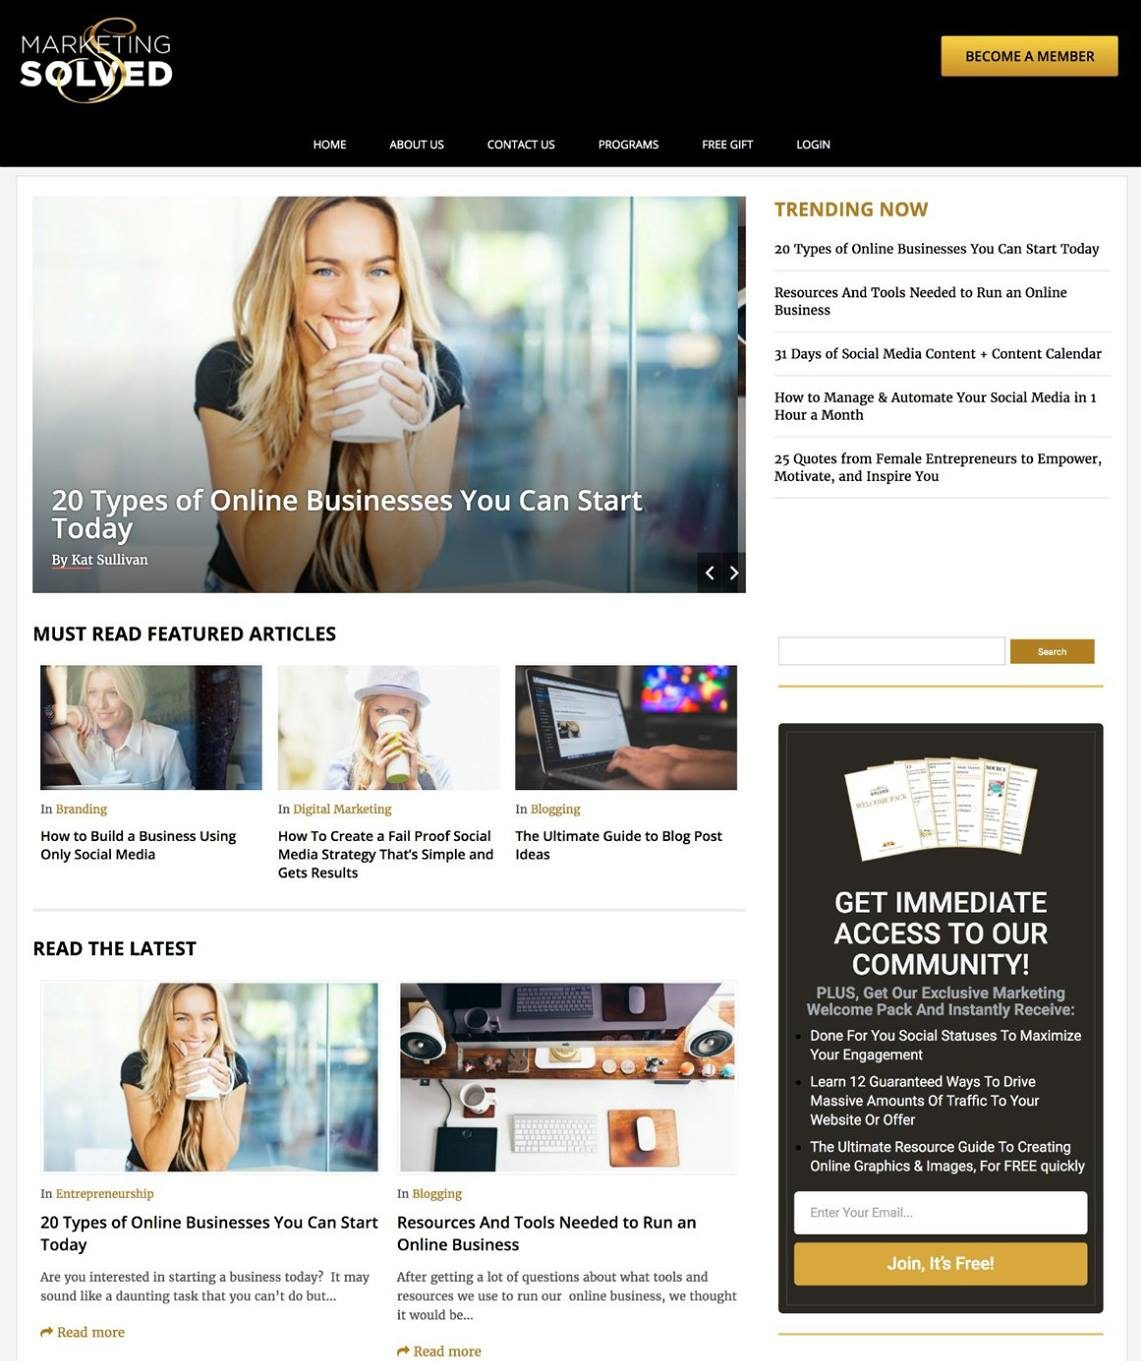 Marketing Solved Website - Blog